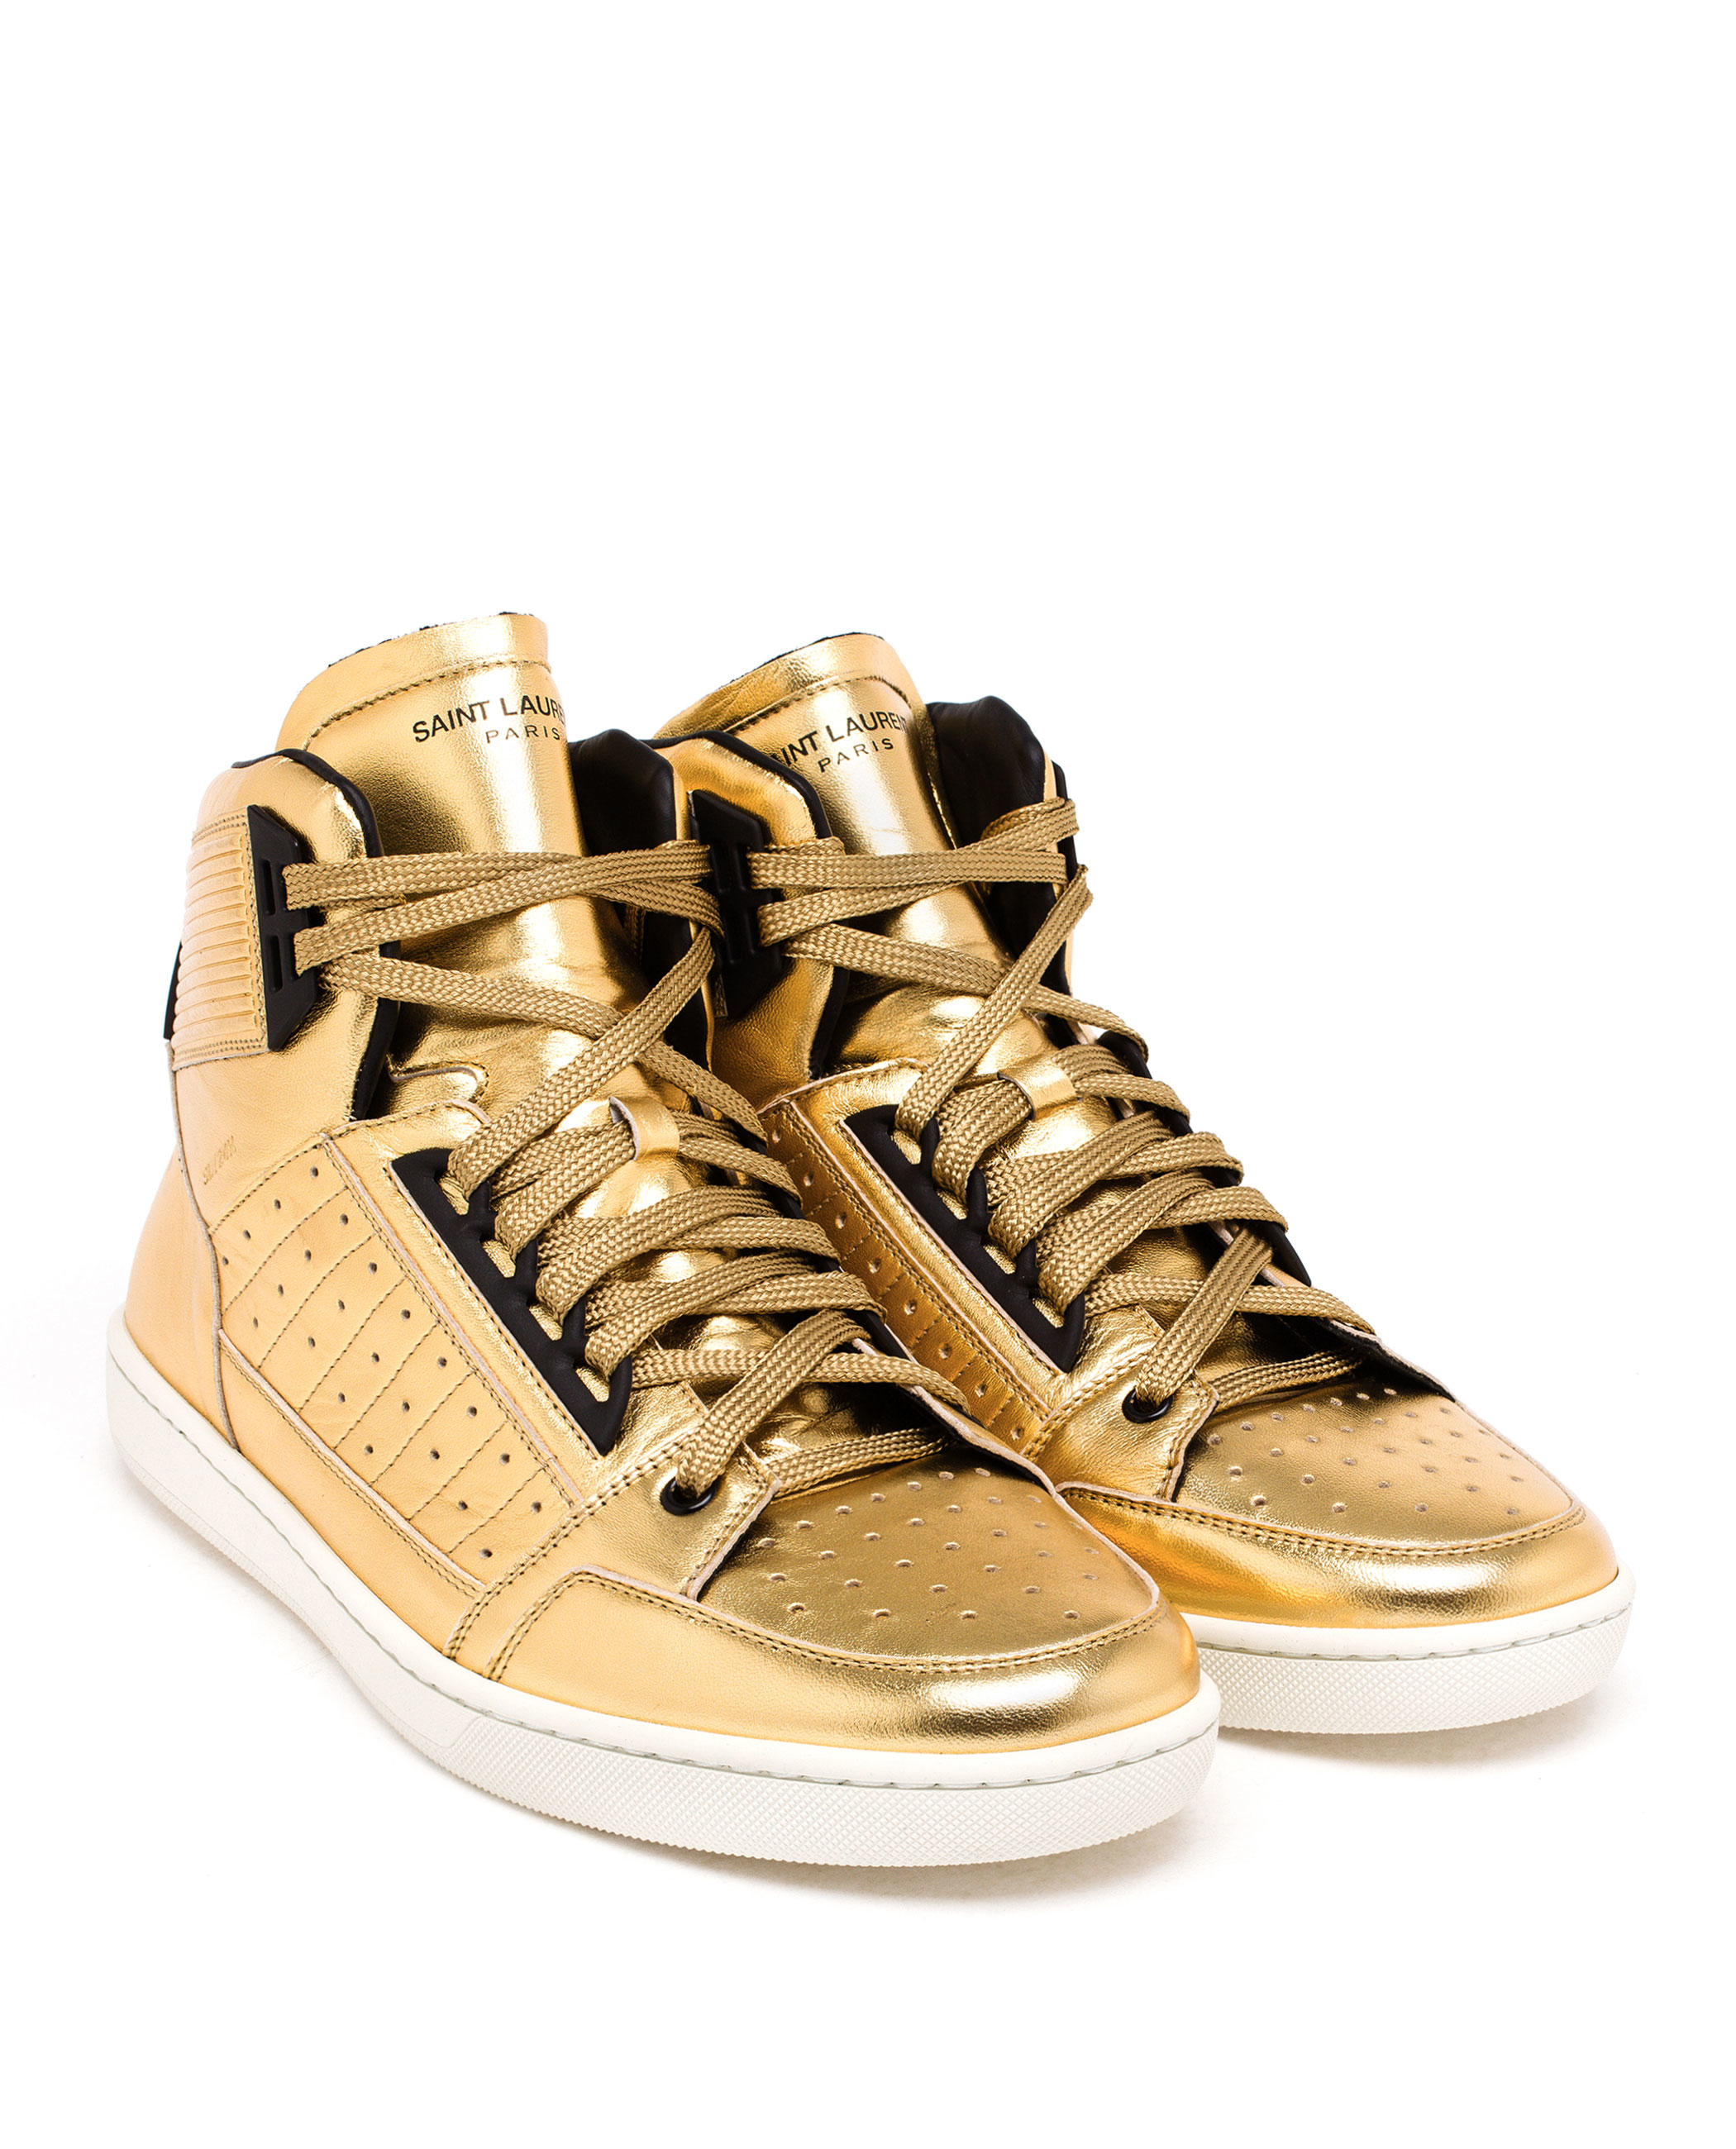 Saint Laurent High-top Trainers in Gold